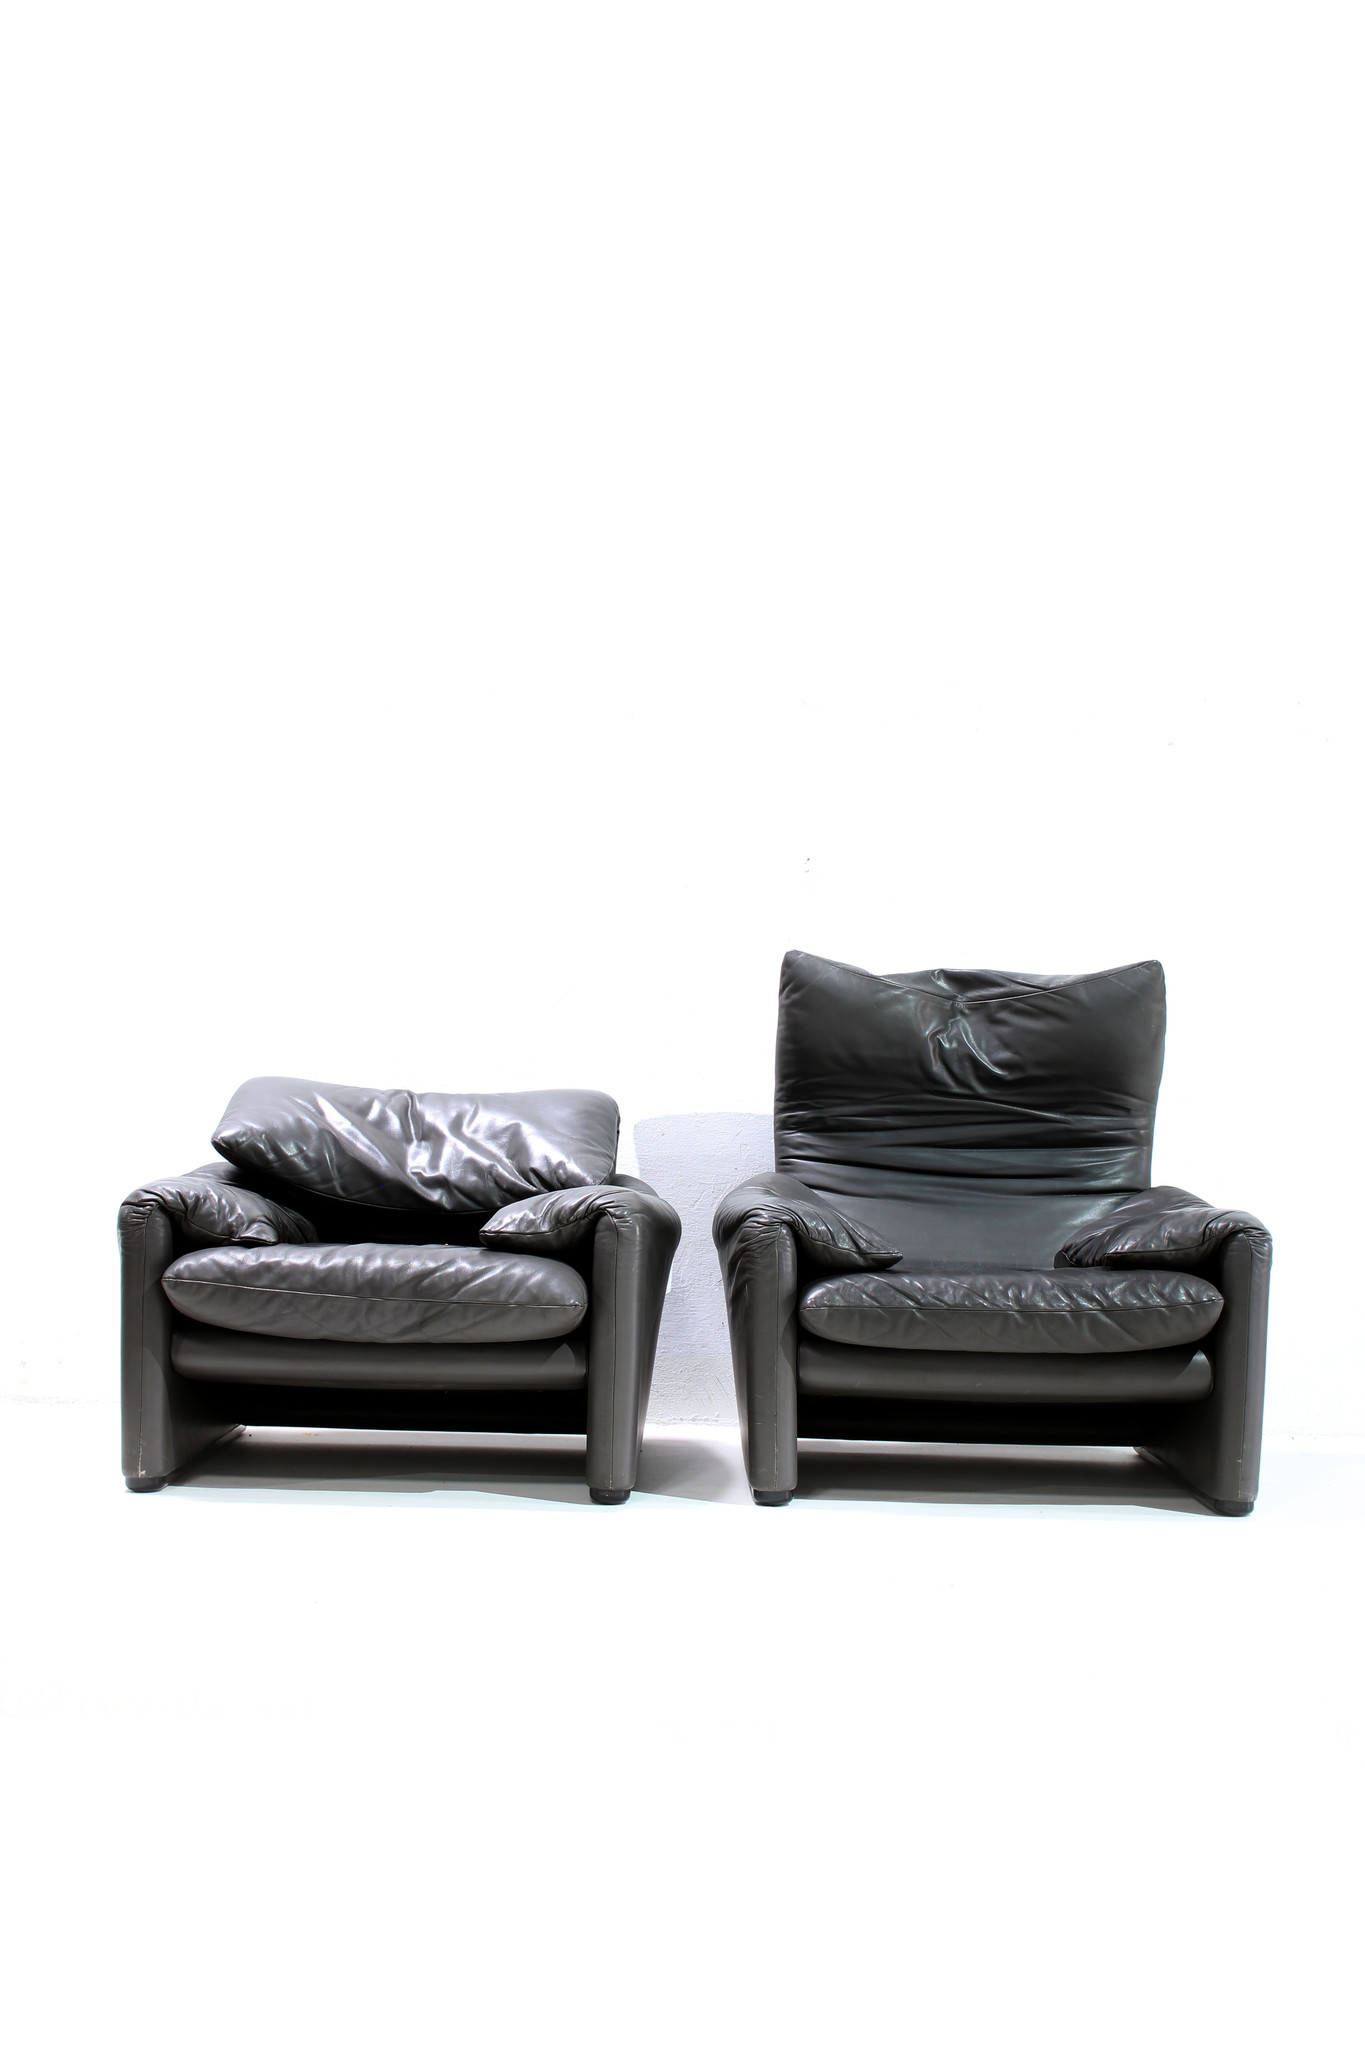 Corbusier Zetel Maralunga Sofa Set Door Vico Magistretti Voor Cassina